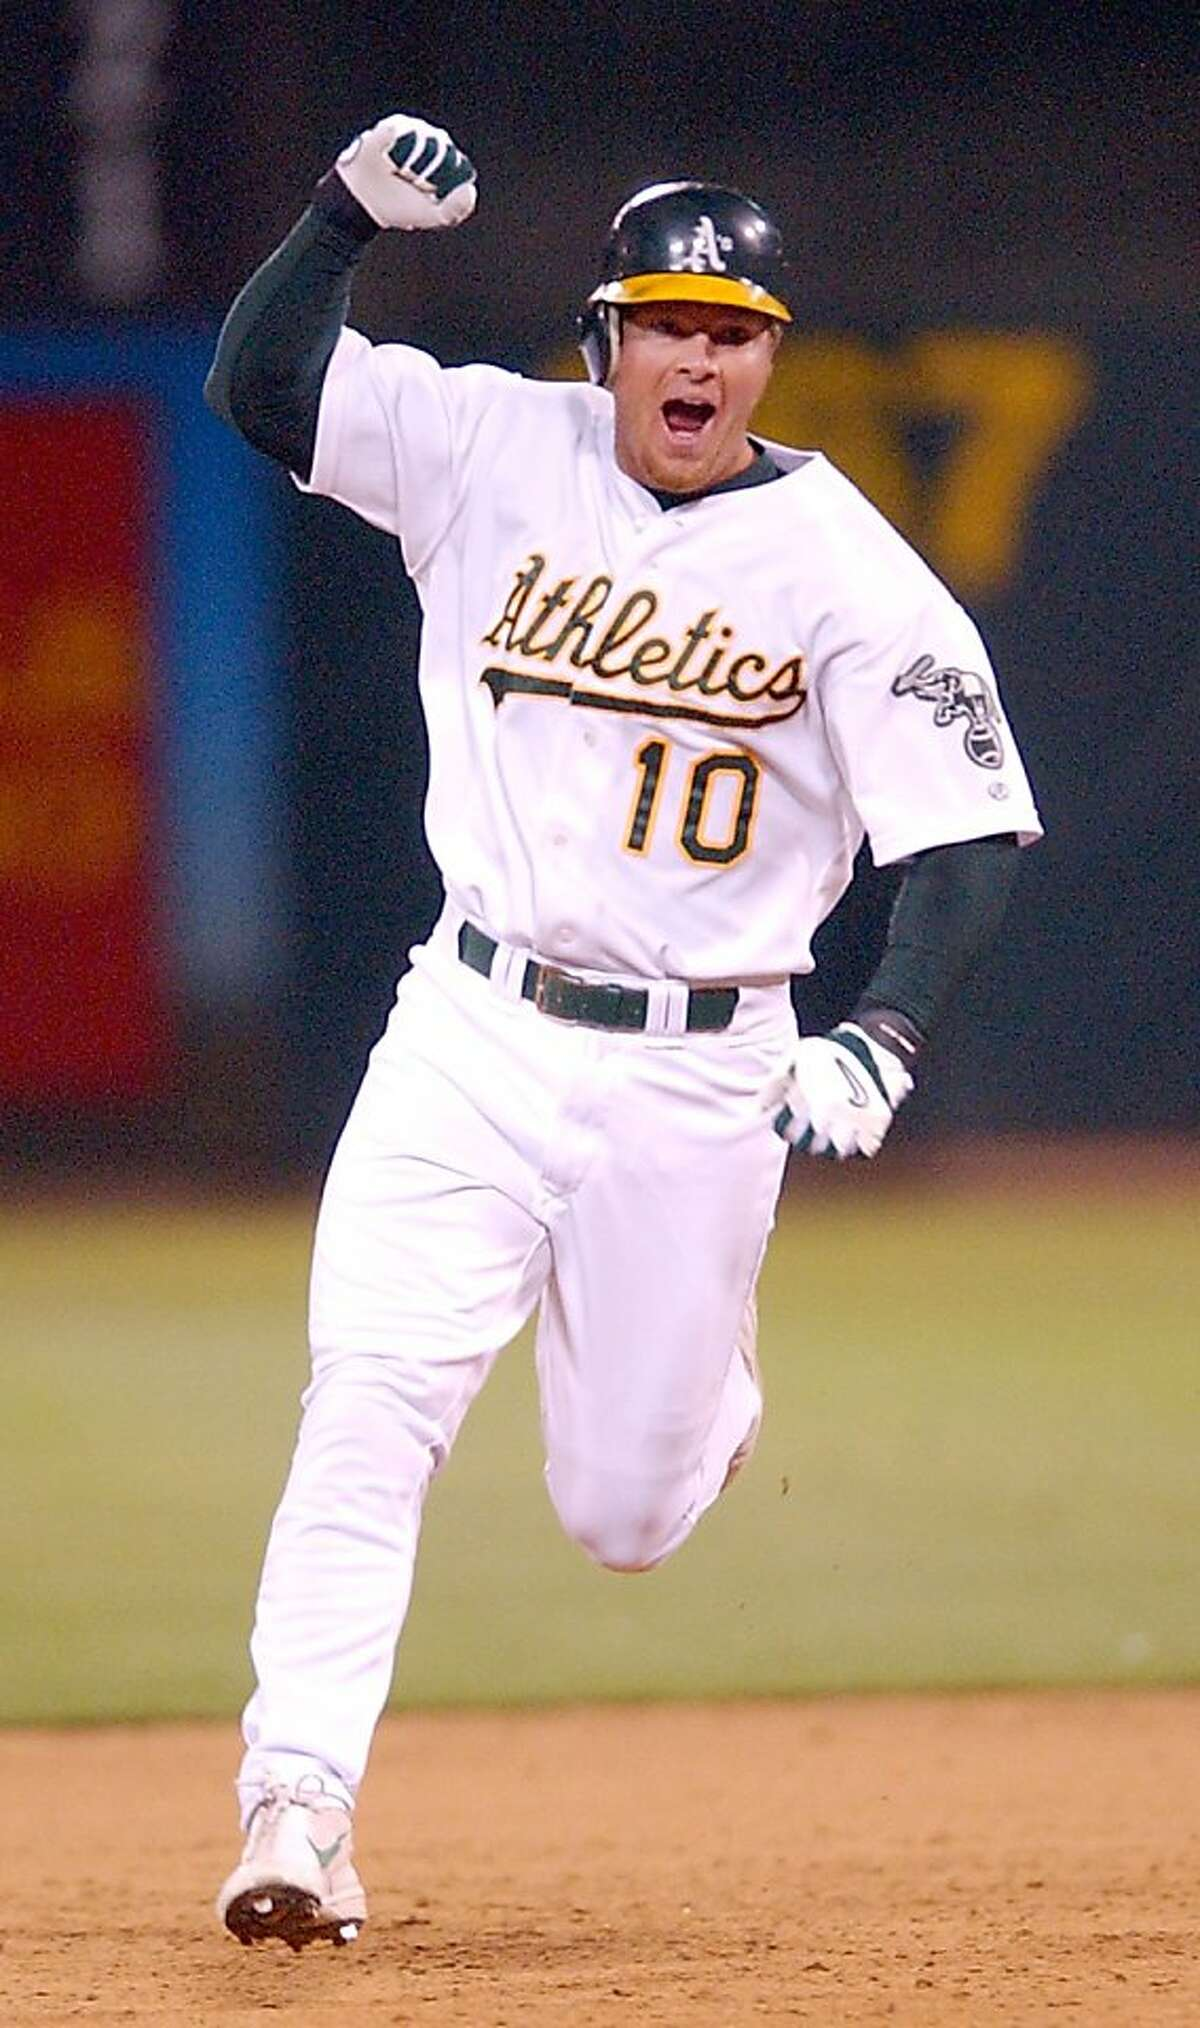 Oakland Athletics' Scott Hatteberg celebrates after hitting a game-winning pinch hit home run against the Kansas City Royals during the ninth inning at the Network Associates Coliseum in Oakland, Calif. on September 4, 2002. The Athletics won their 20th straight game, breaking the American League record for most consecutive wins. REUTERS/Justin Sullivan ALSO Ran on: 08-31-2008 Ran on: 09-18-2011 Scott Hatteberg , prominent in the book, homered to give As a 20th straight win. Ran on: 09-18-2011 Scott Hatteberg, prominent in the book, homered to give As a 20th straight win.